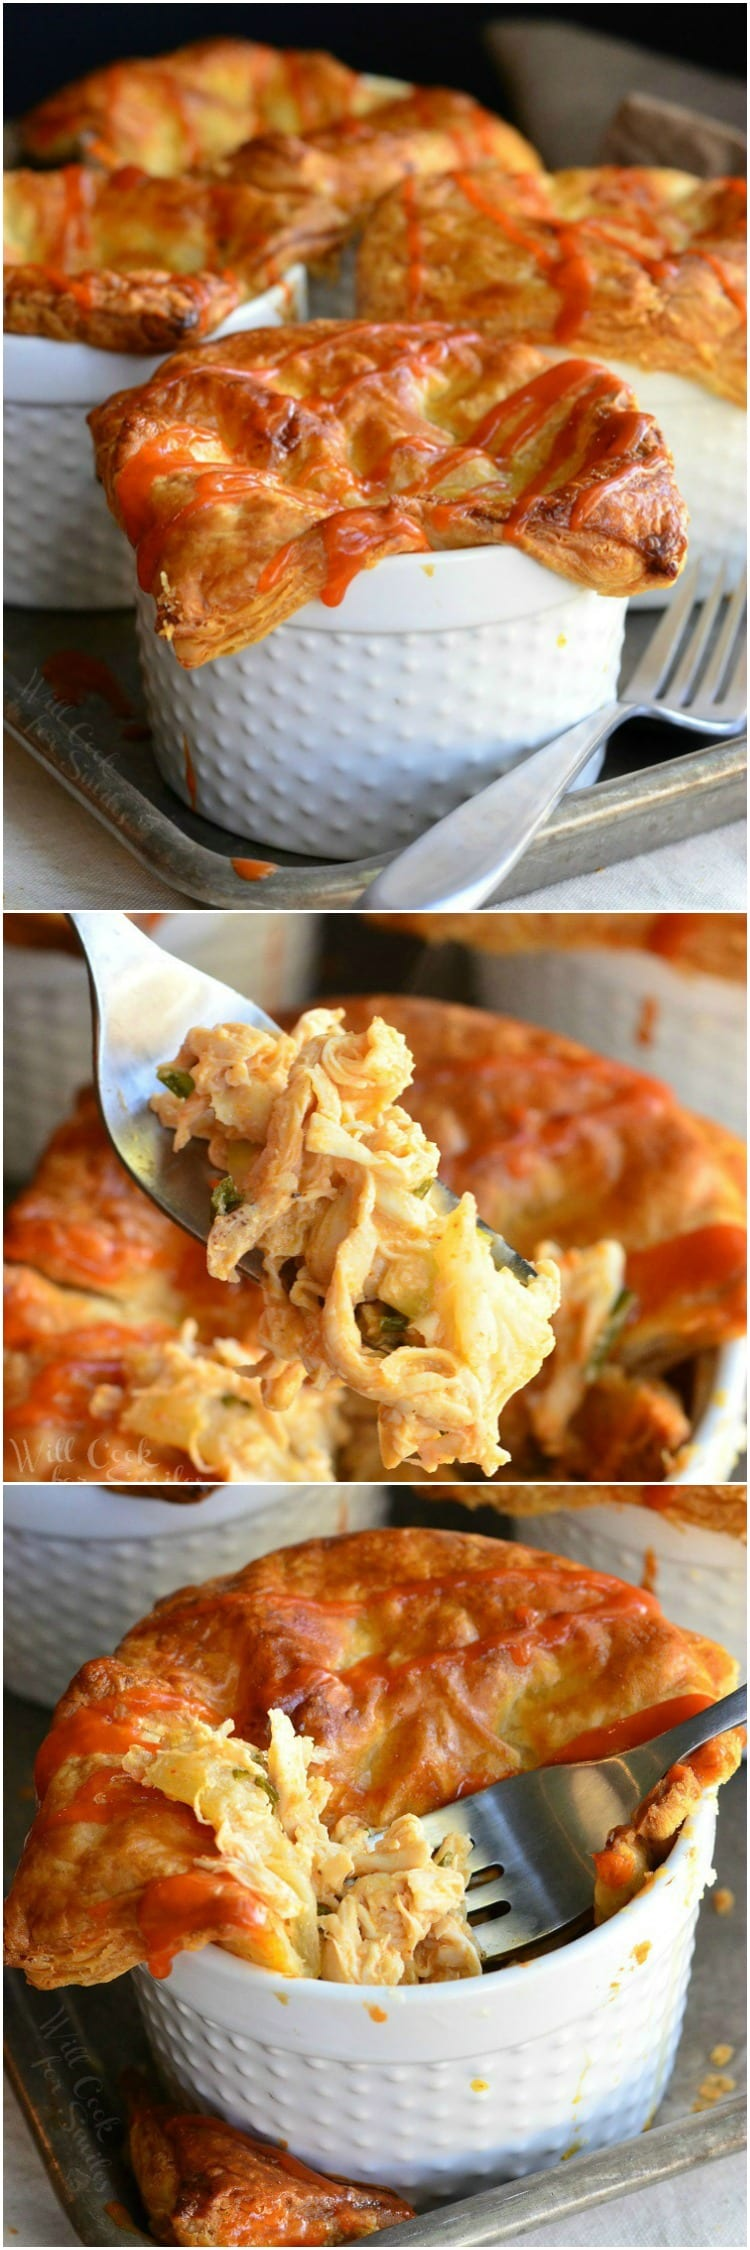 Buffalo Chicken Pot Pie | from willcookforsmiles.com #dinner